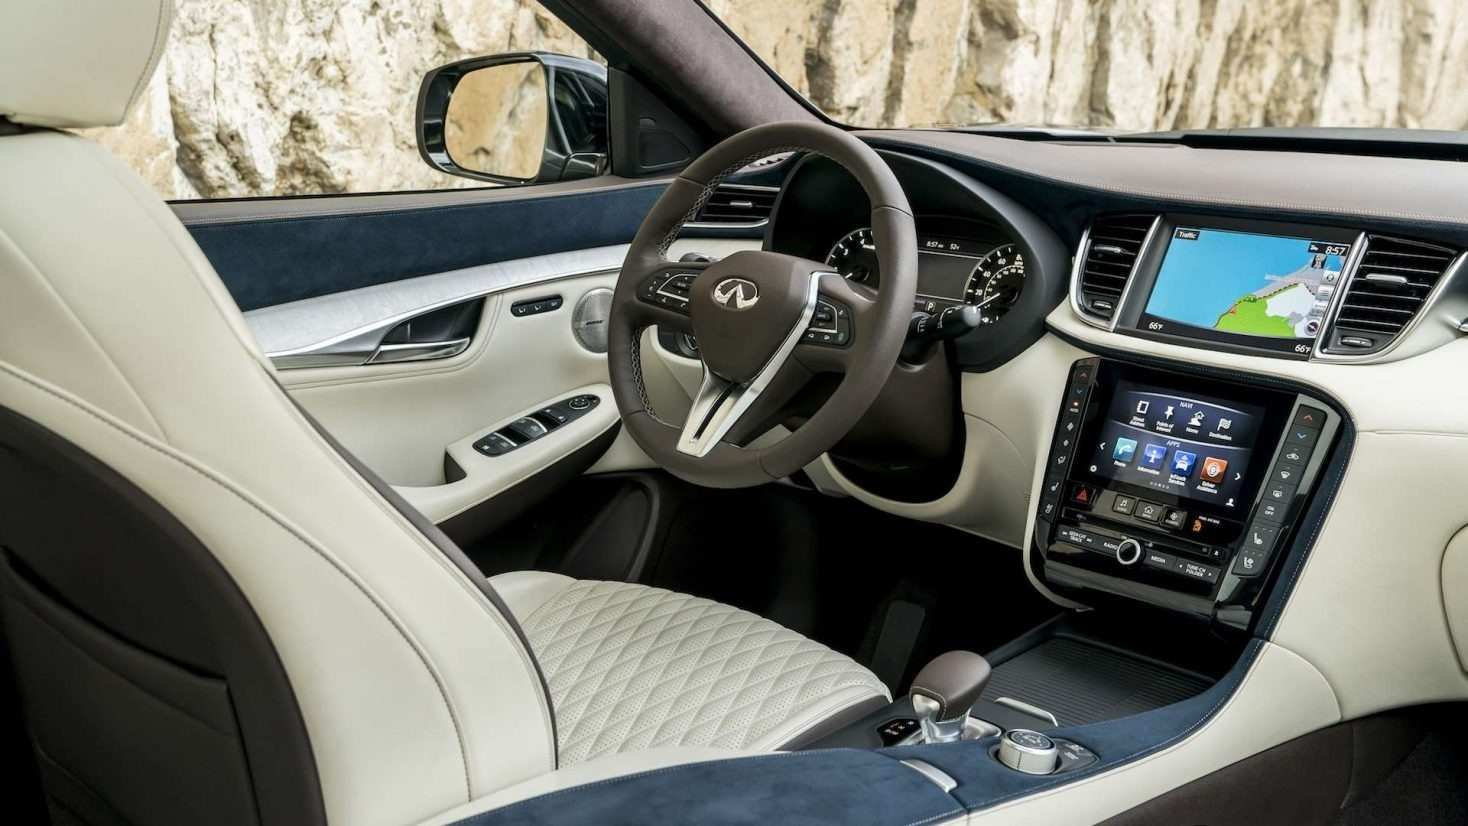 65 Best 2019 Infiniti QX70 Prices